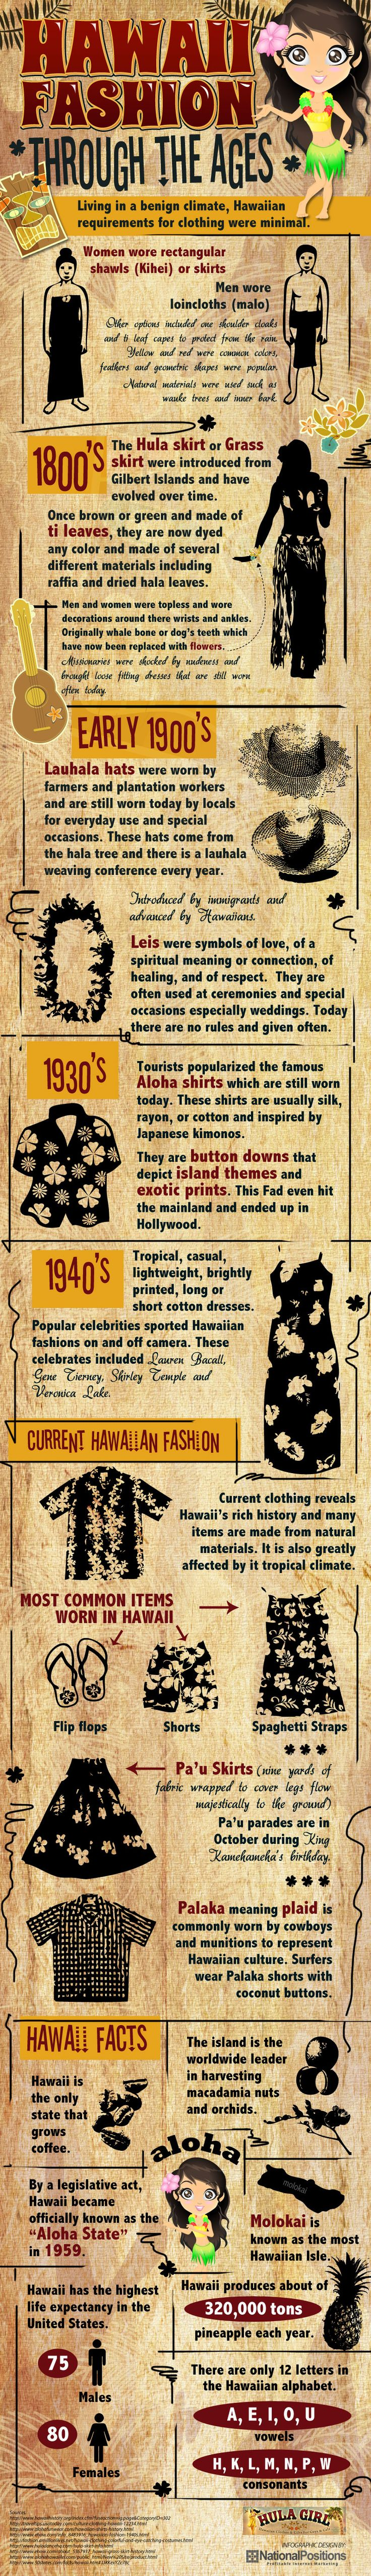 Hawaiian Fashion Through the Ages